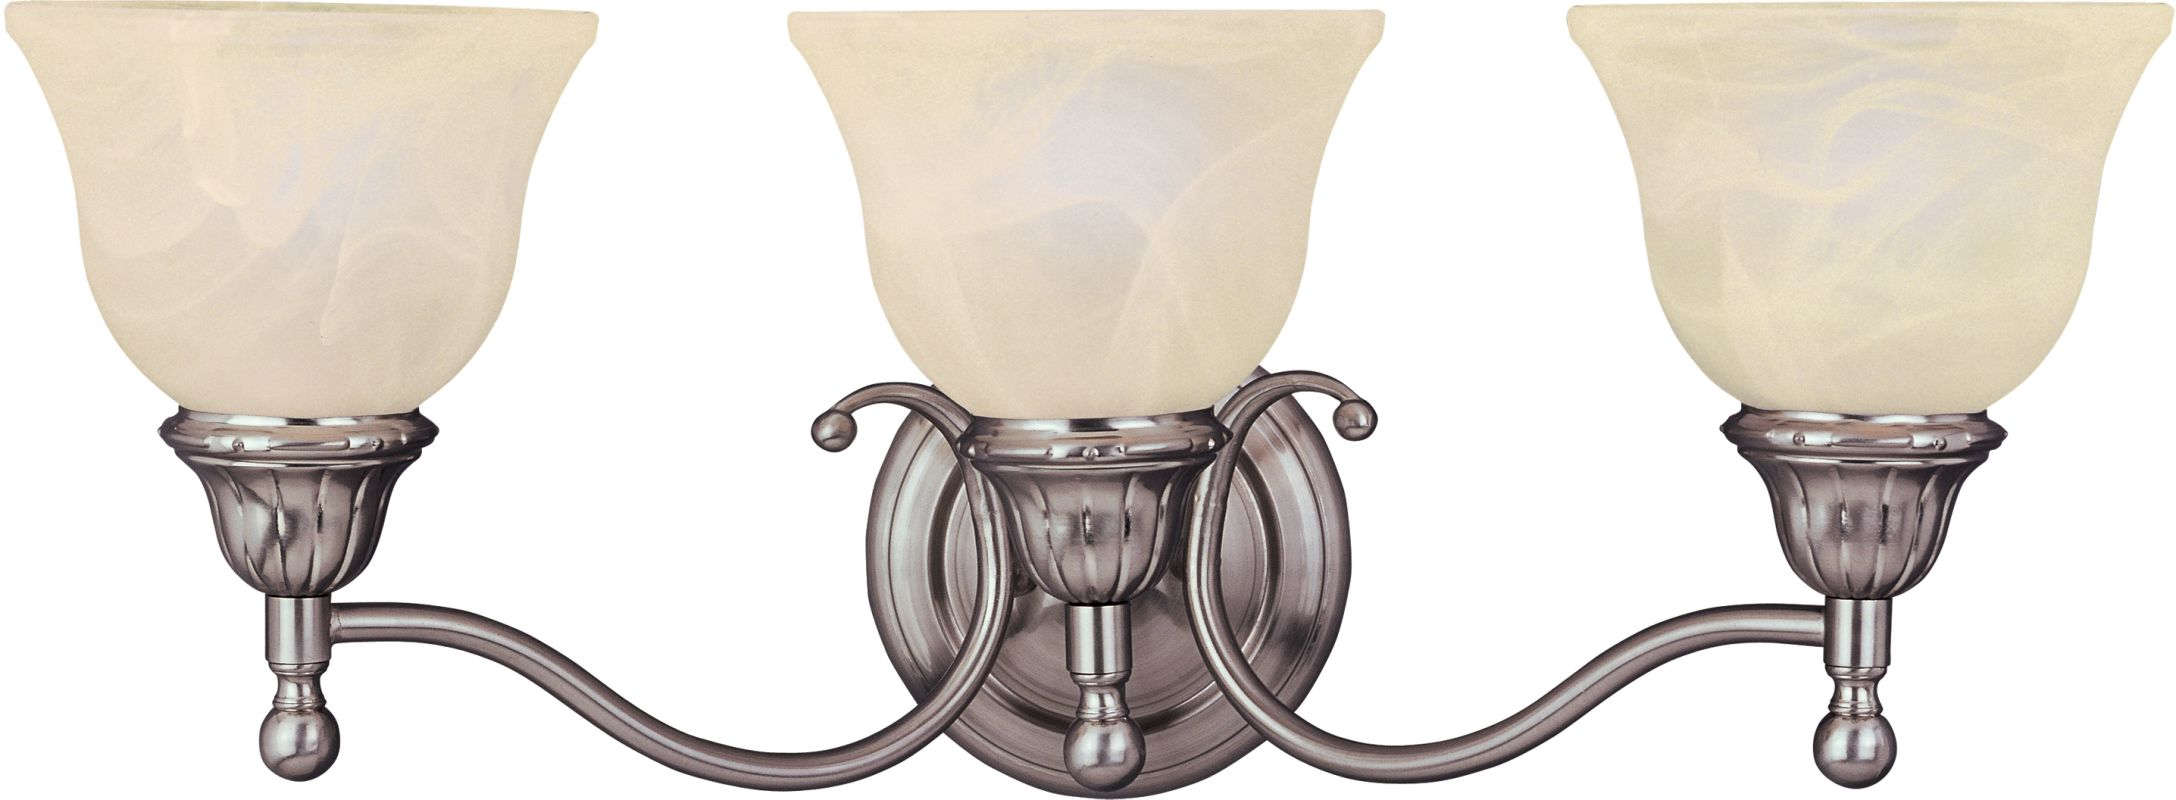 "Maxim 11058 3 Light 23.5"" Wide Bathroom Fixture from the Soho"